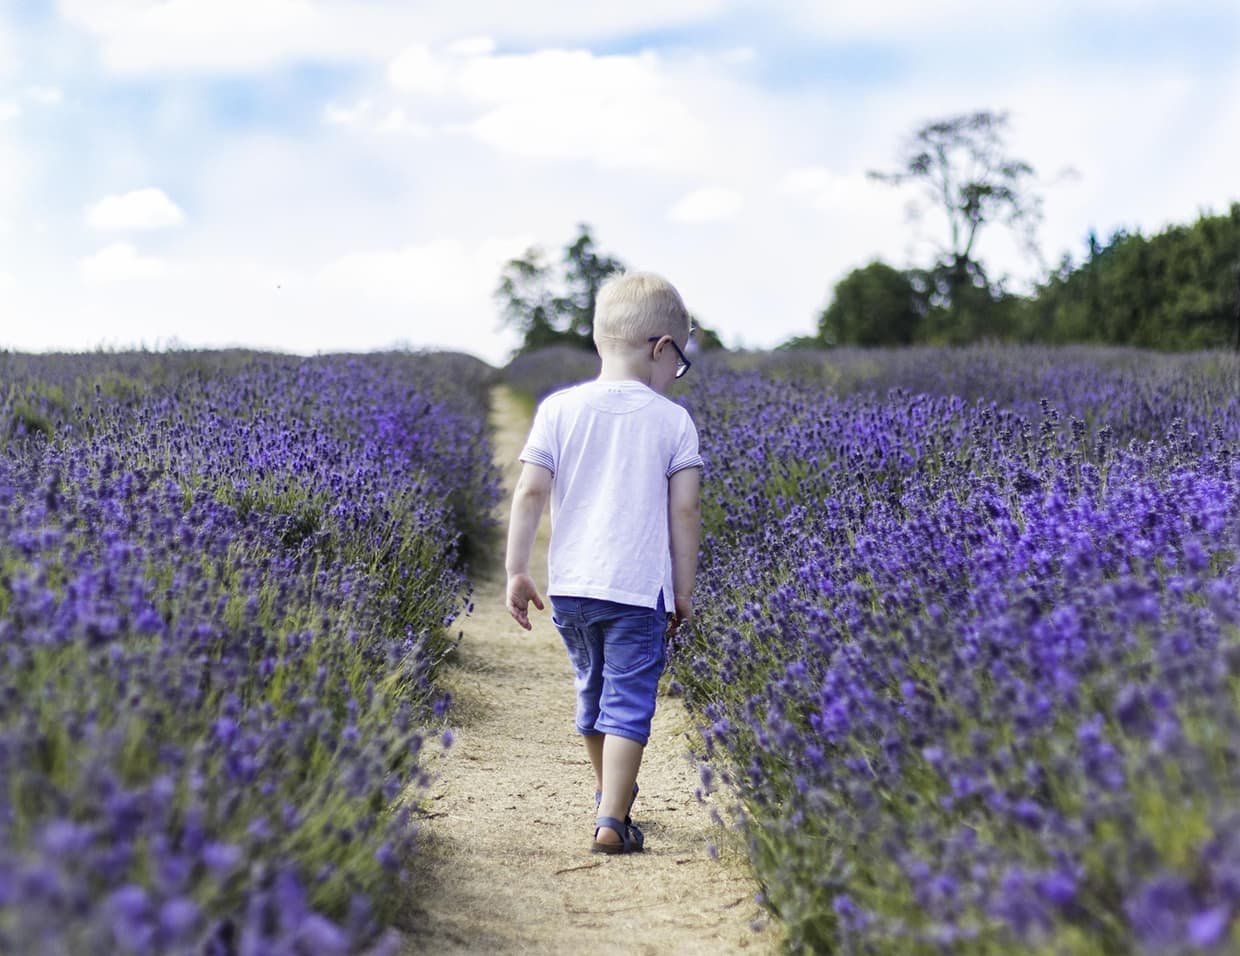 Lavender photography from Victoria Welton of Somerset, England.